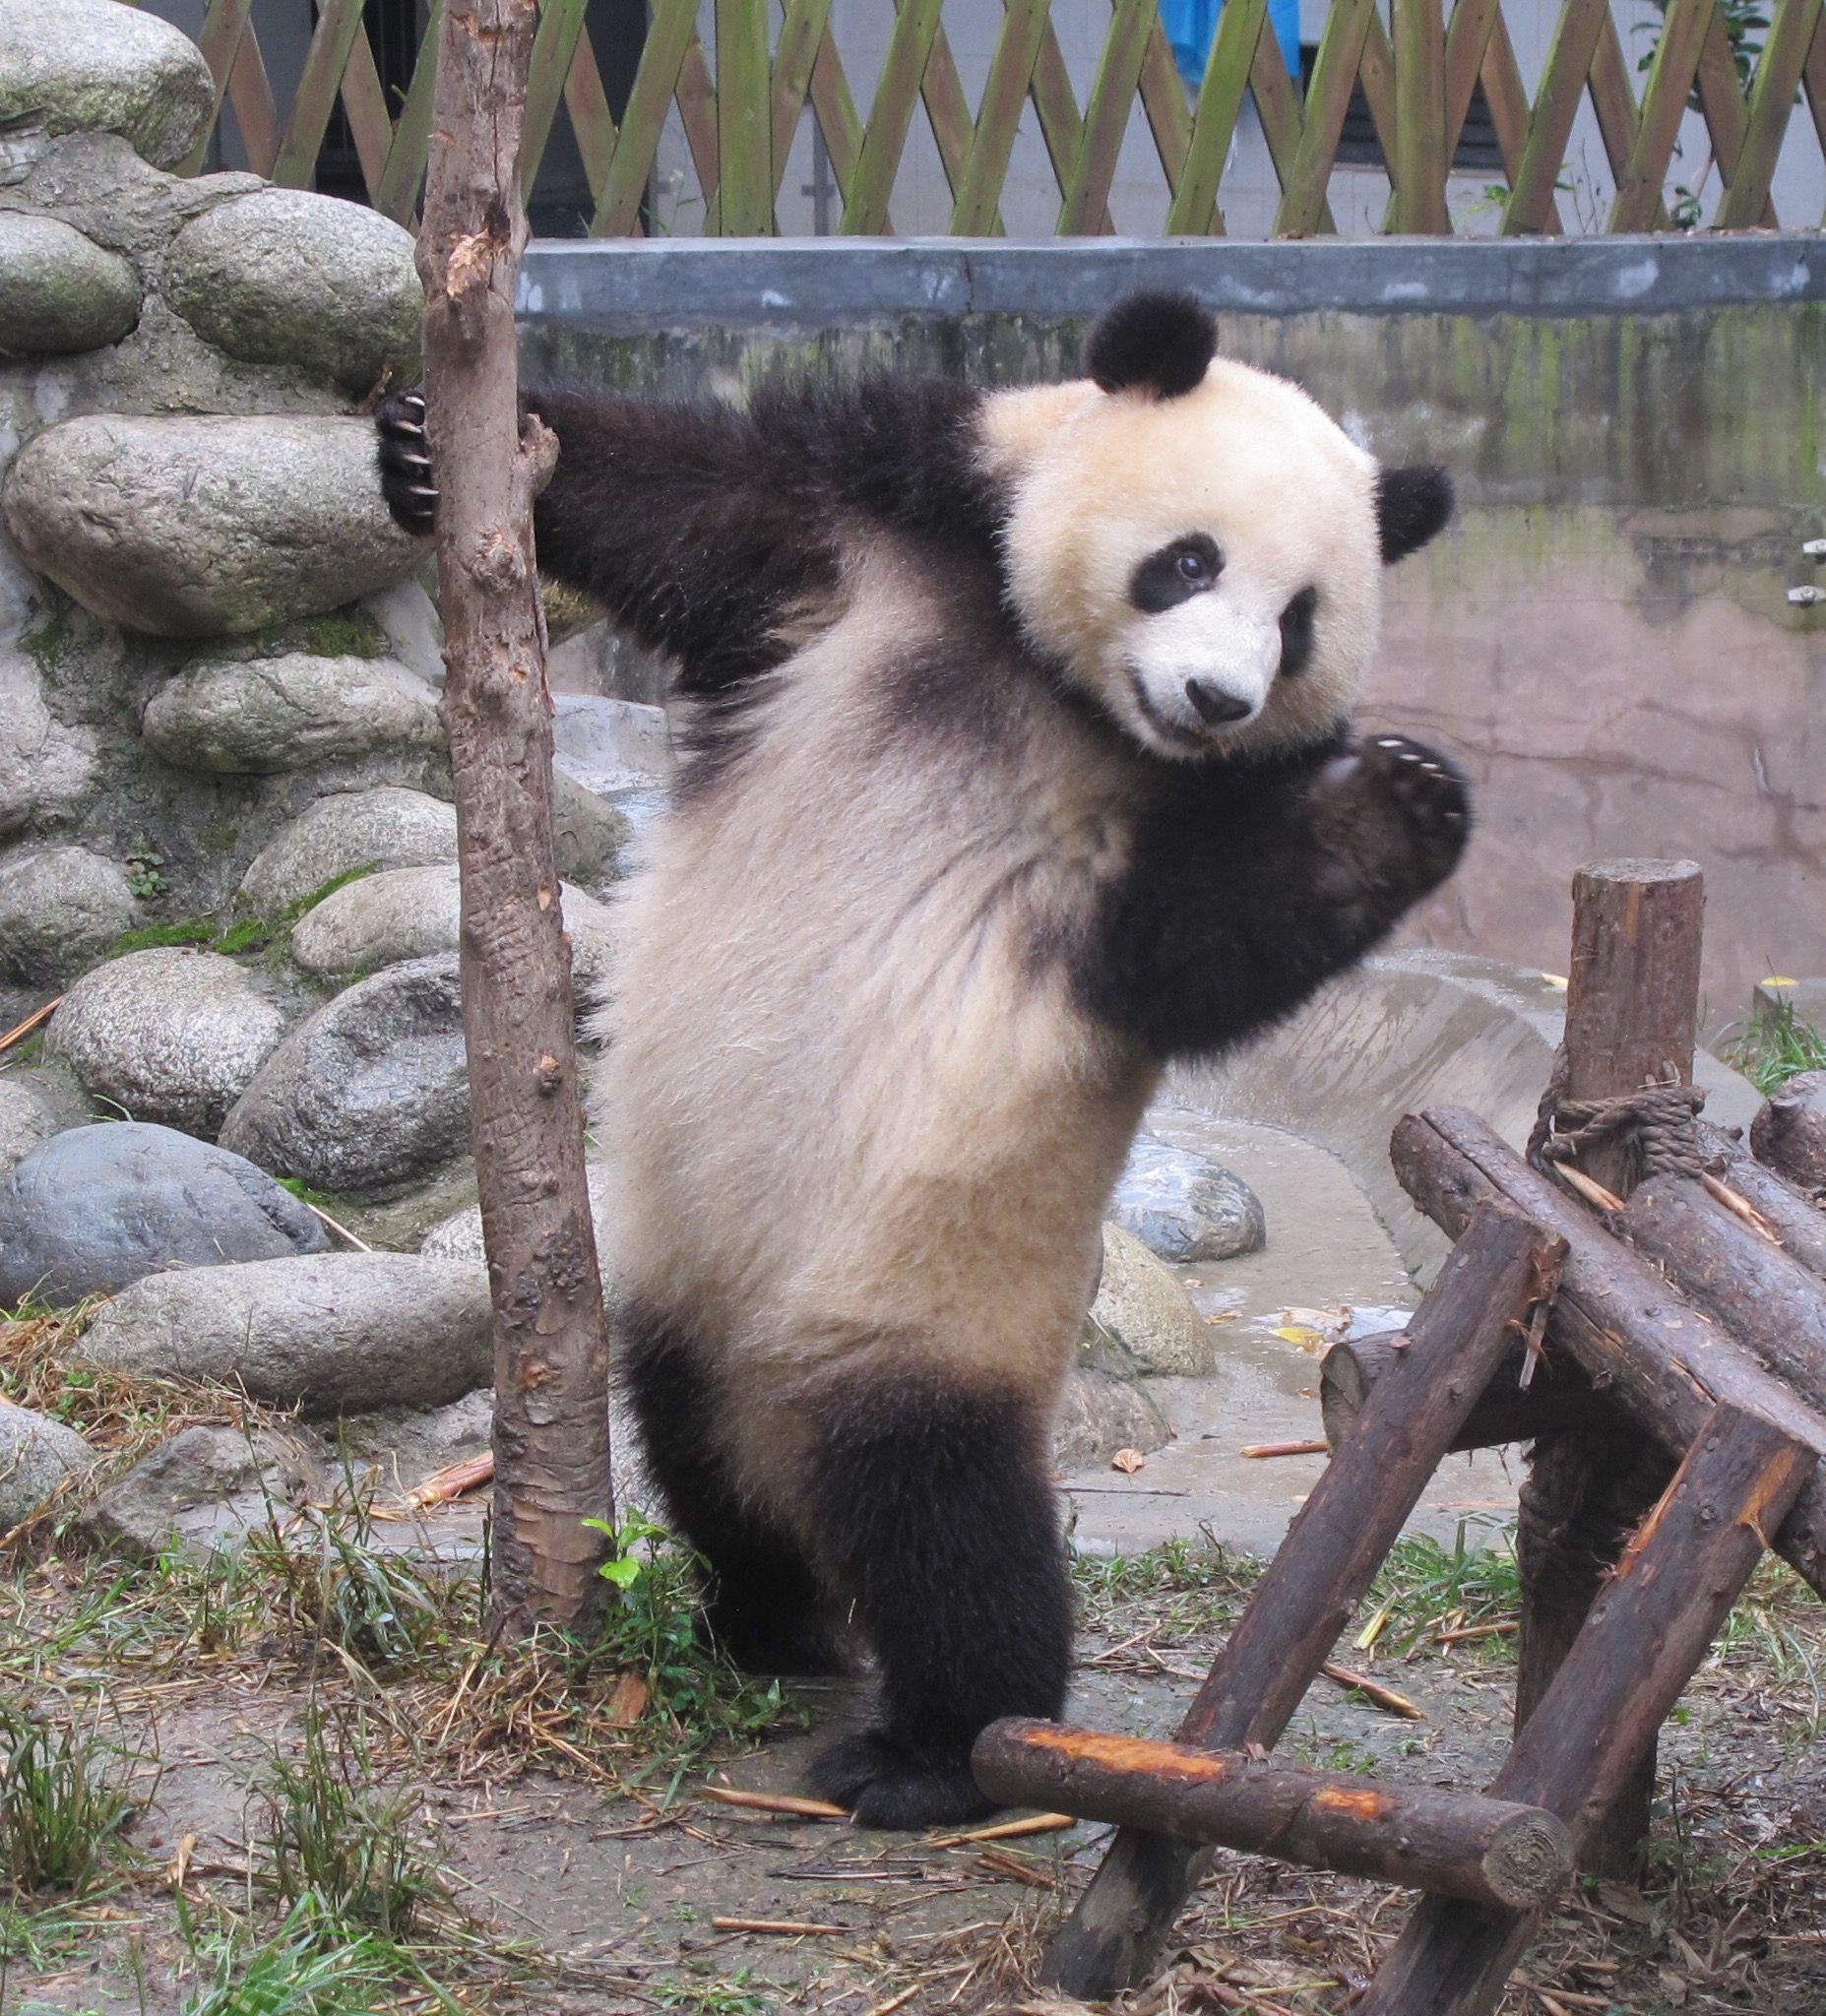 Waving panda. My sister-in-law took this great picture!